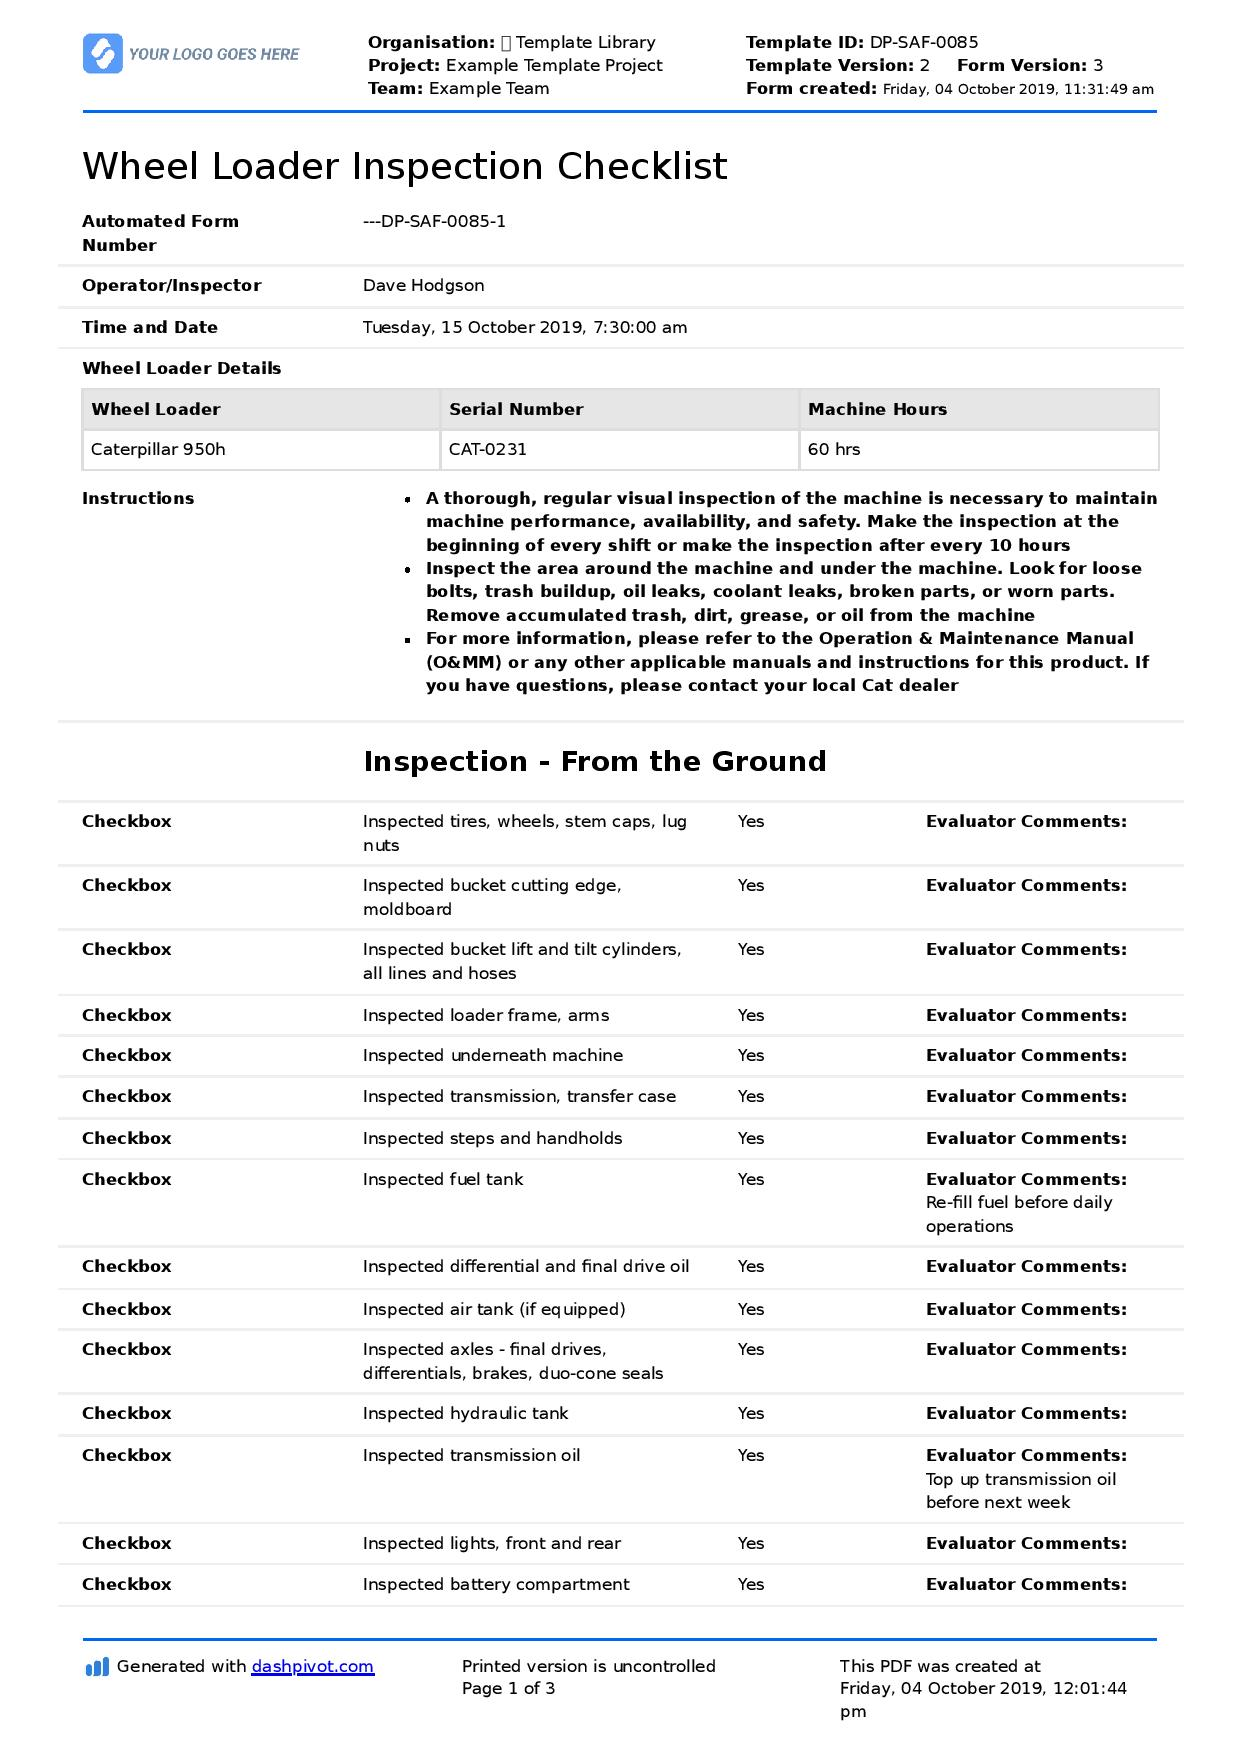 Wheel Loader Inspection Checklist Free Editable Form Template